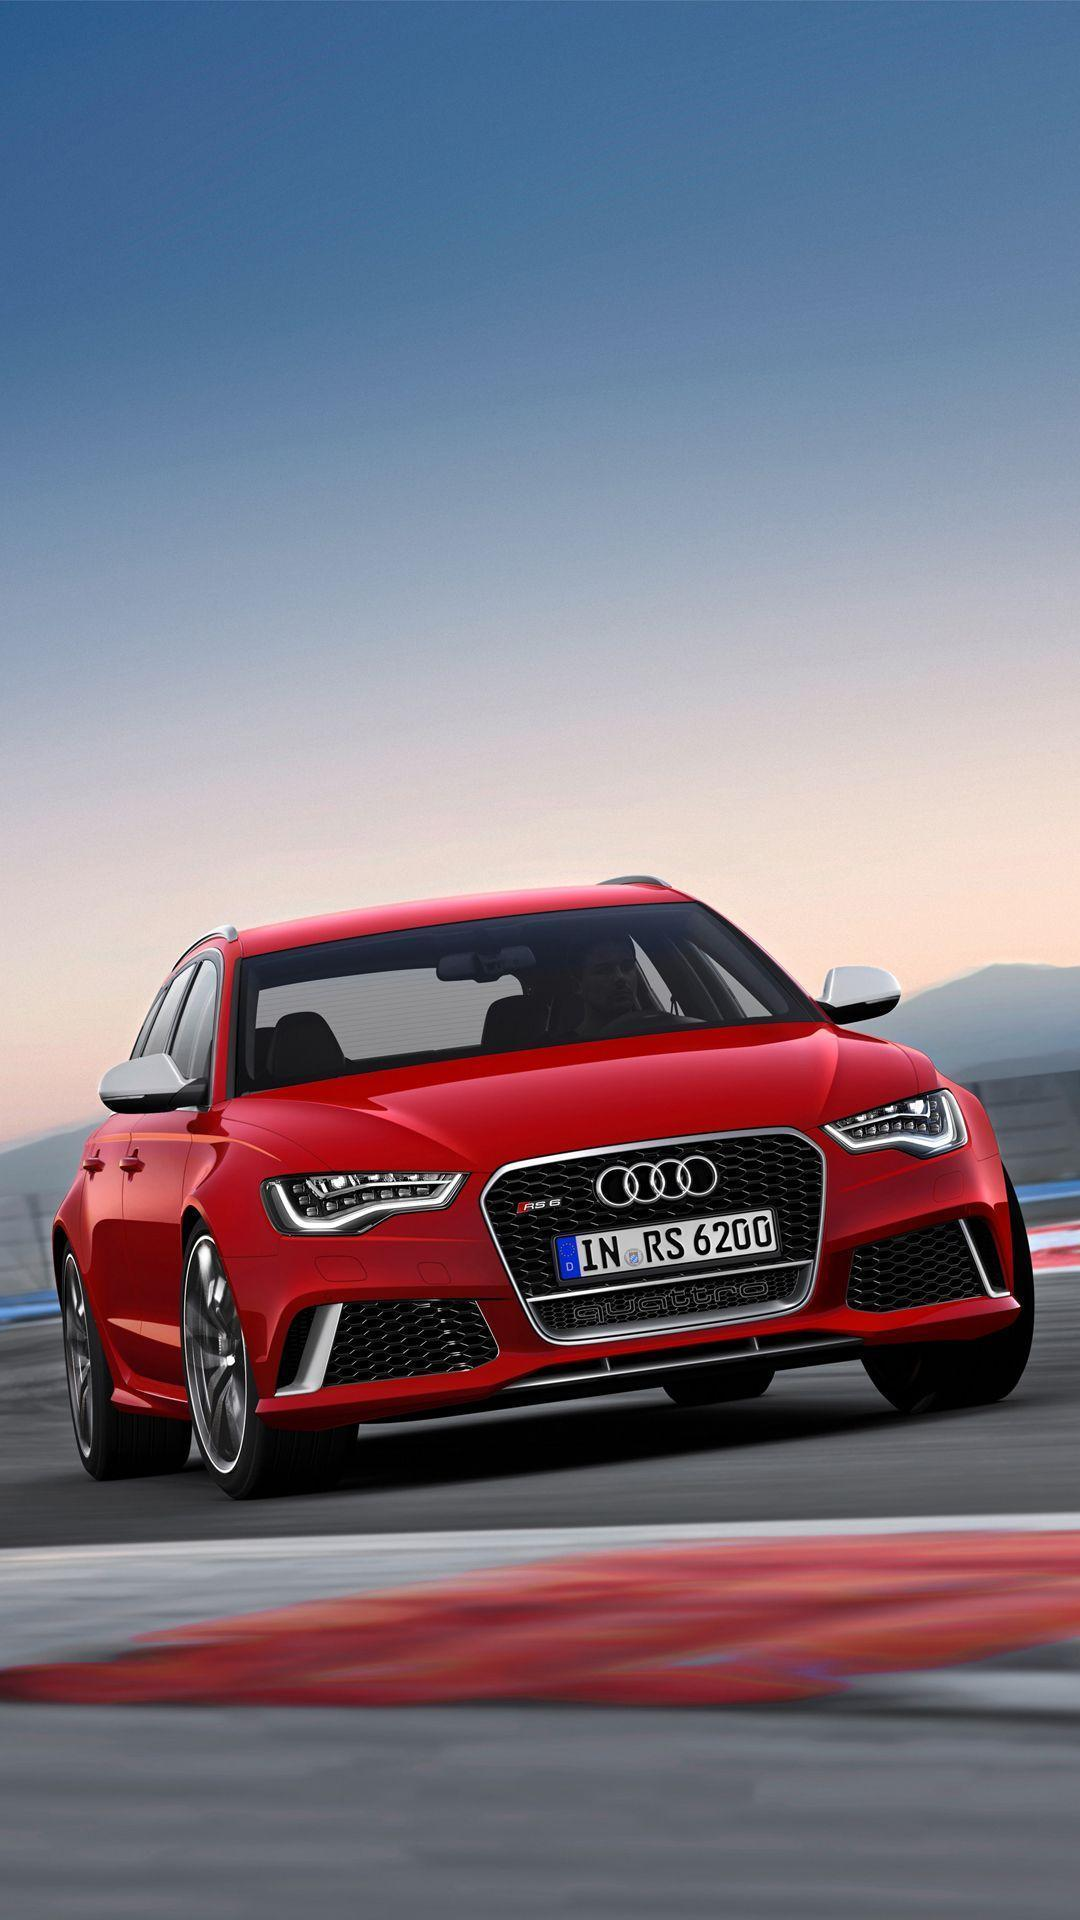 Audi RS6 htc one wallpaper - Best htc one wallpapers, free and ...